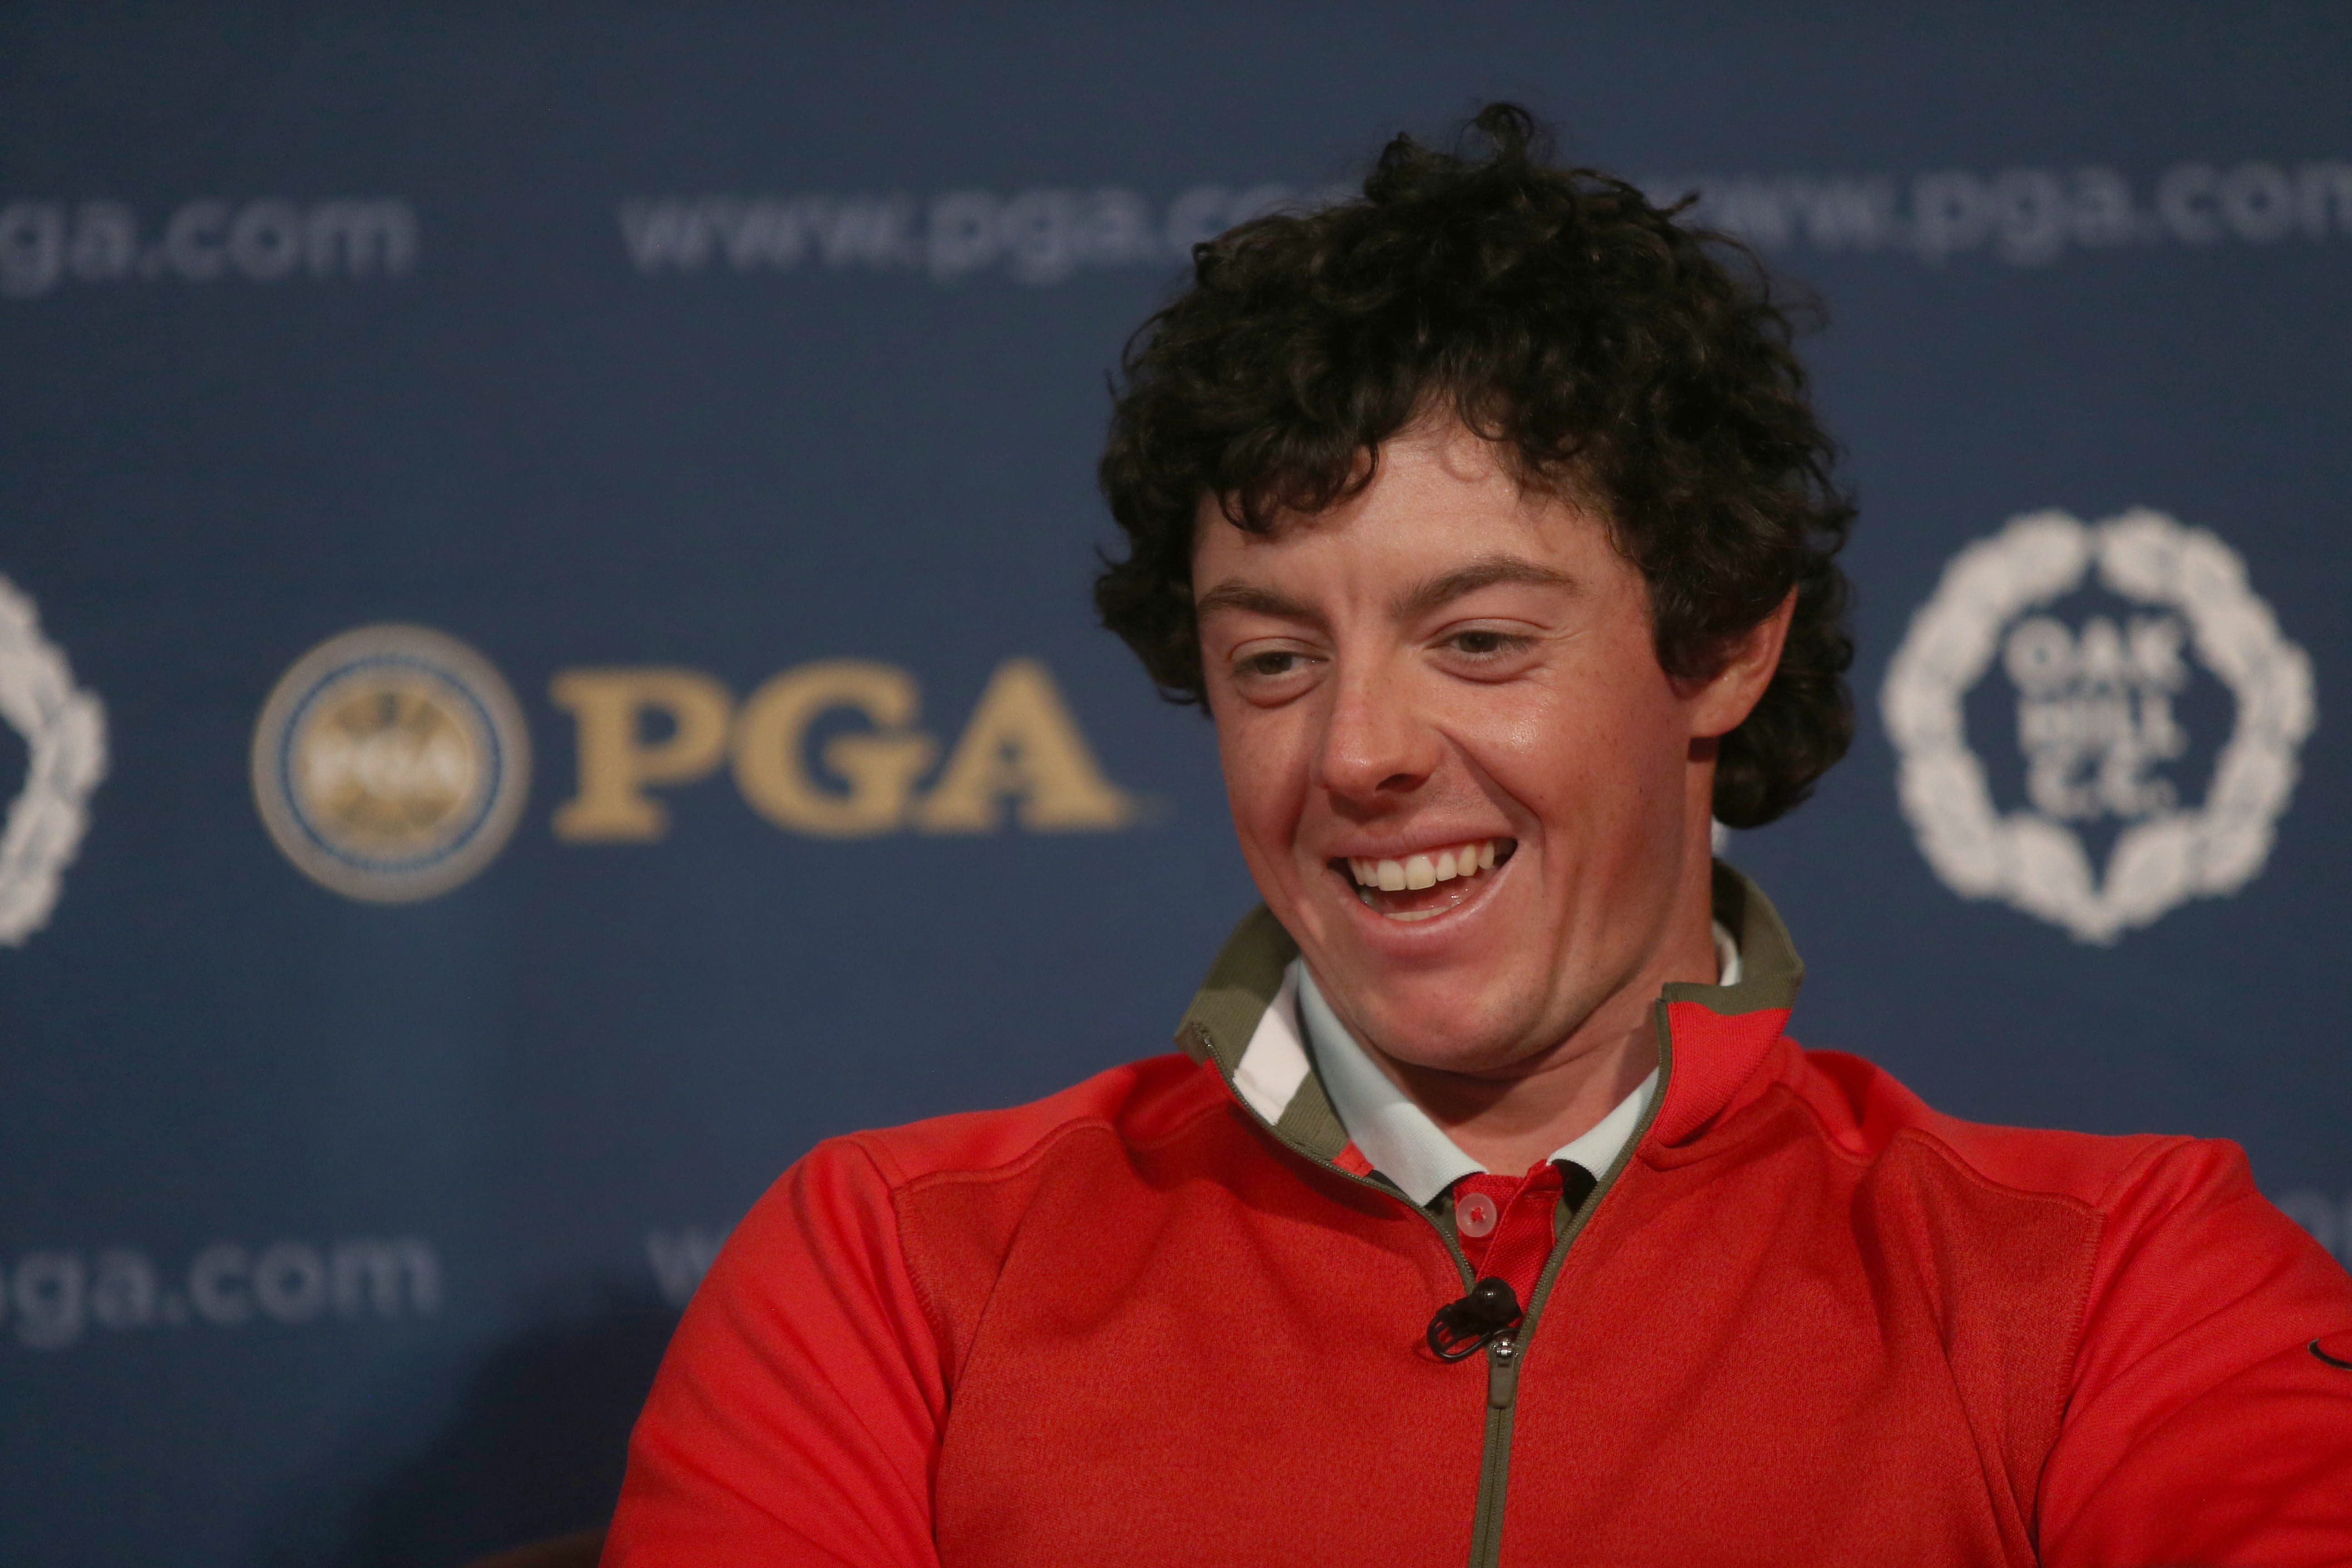 PGA defending champ Rory McIlroy was in a good mood after a practice round Monday.